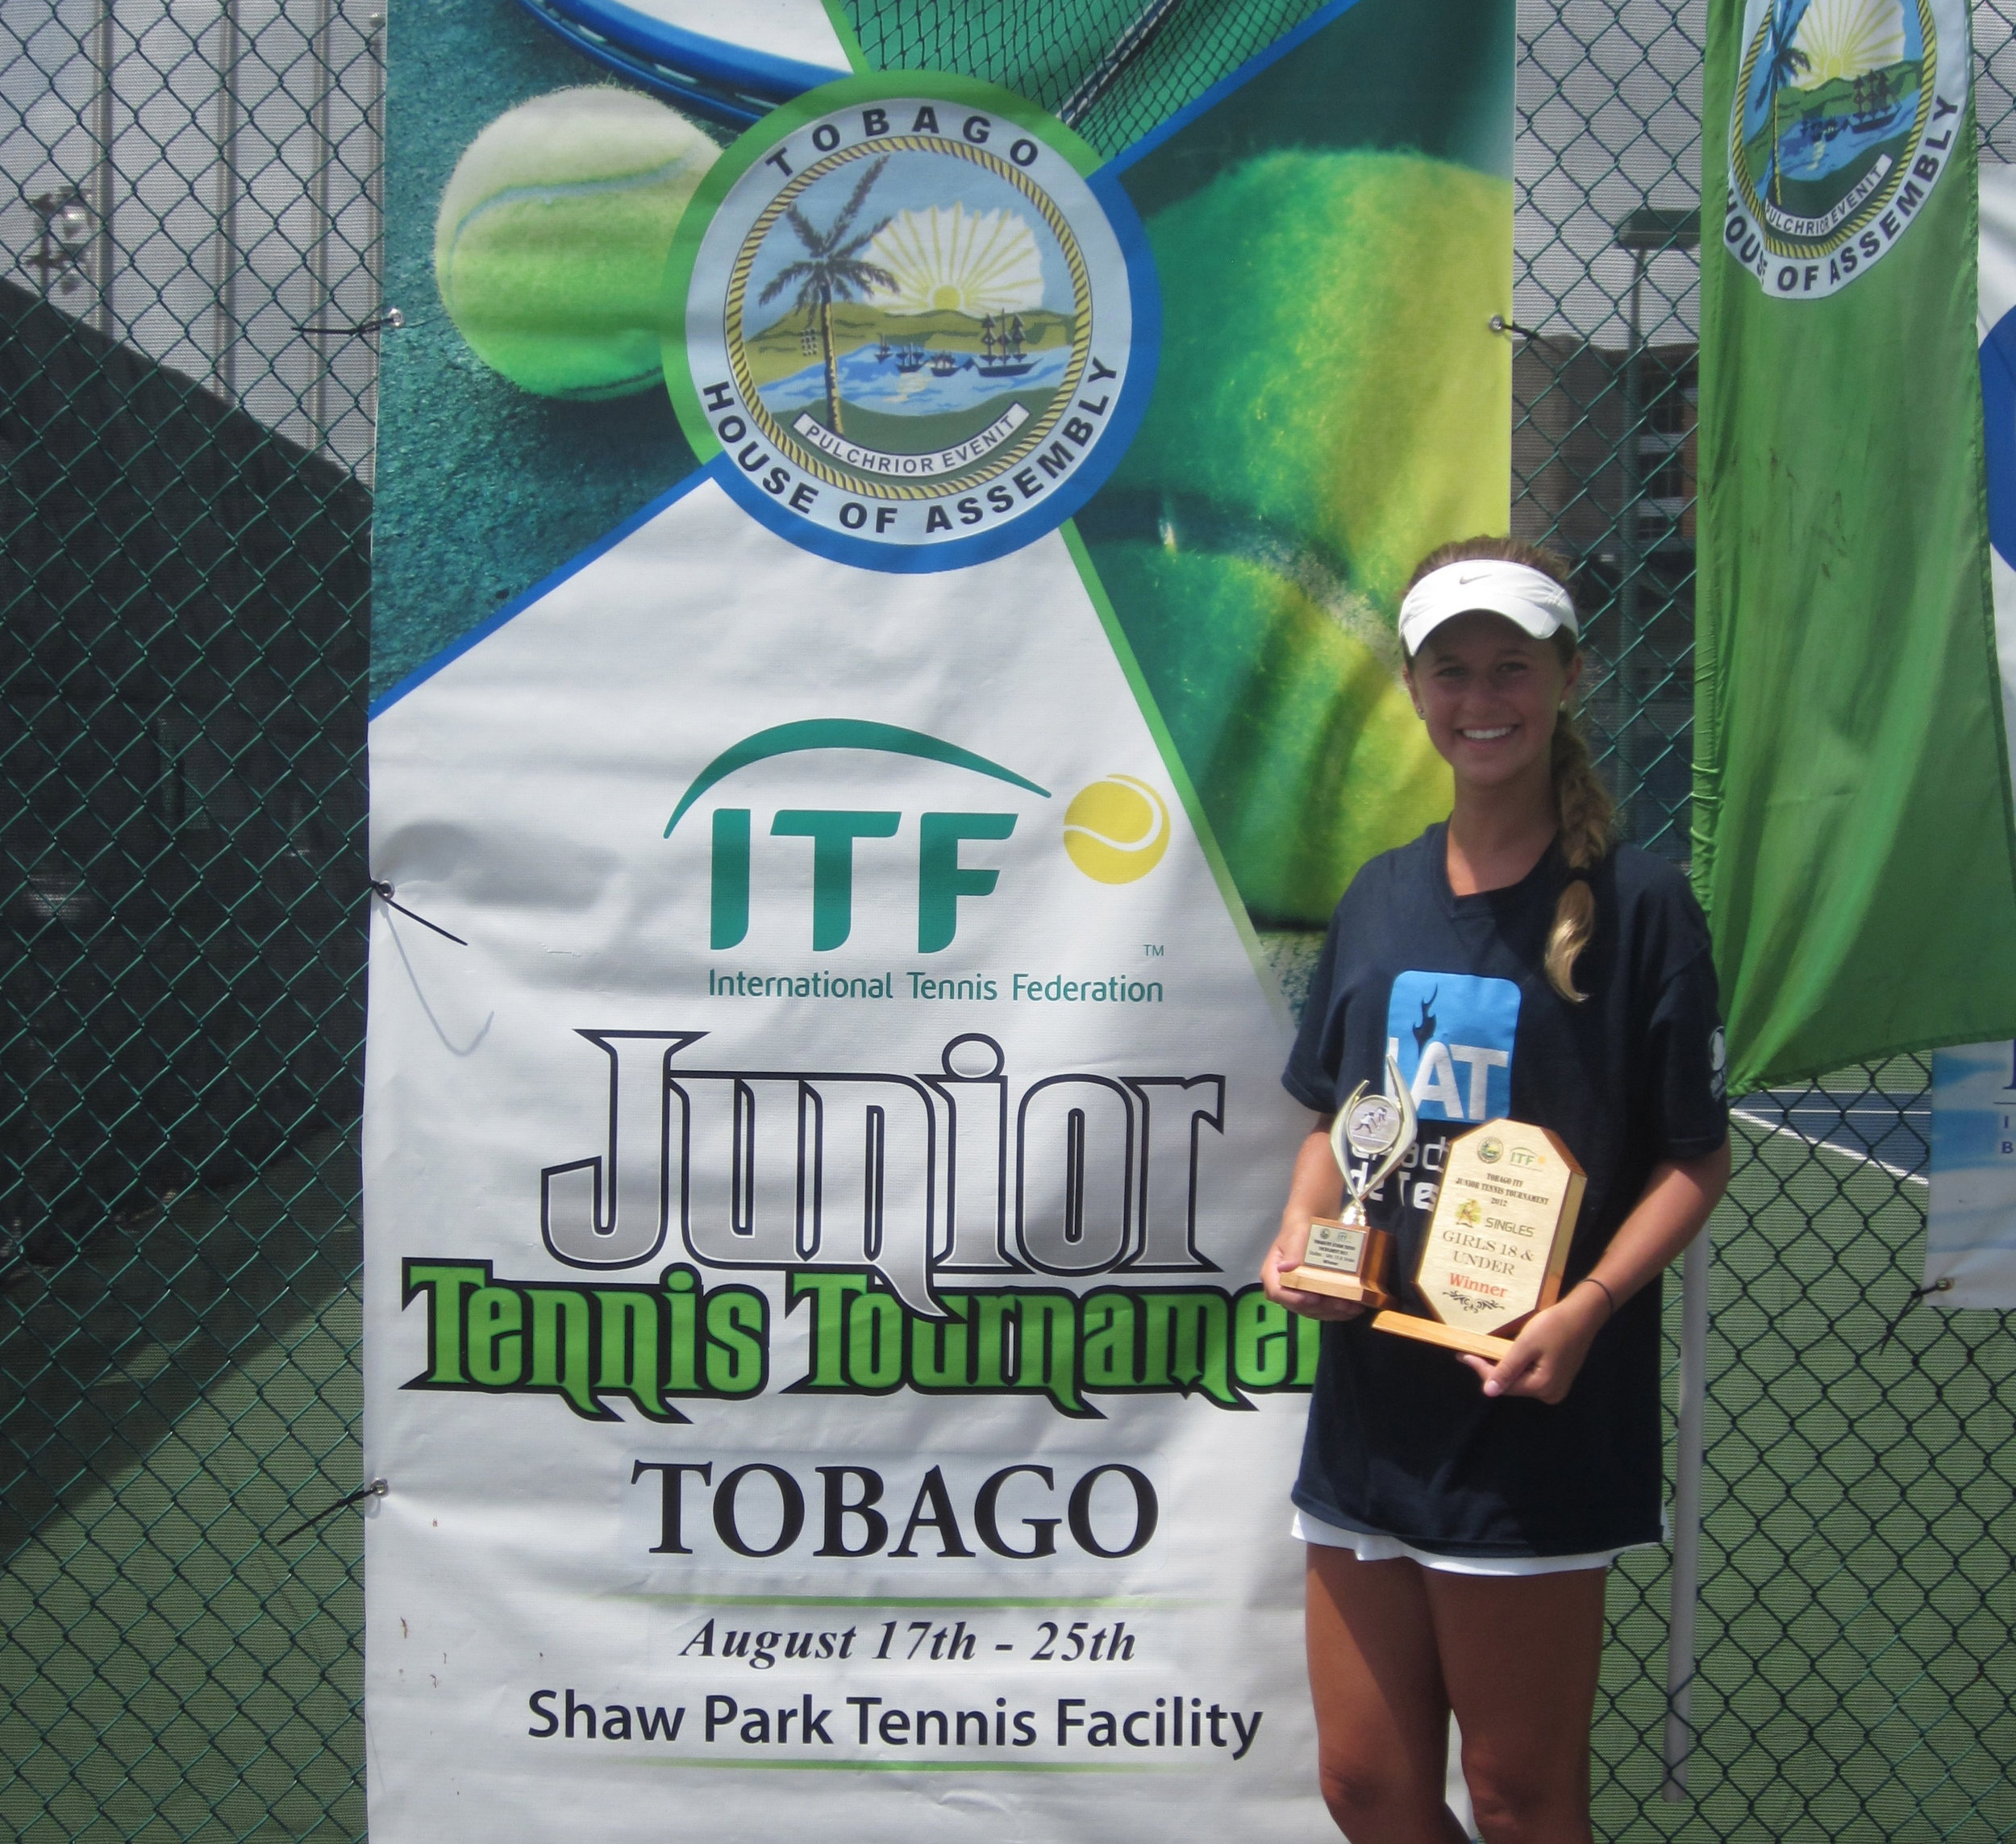 Univ. of alabama - Maddie Pothoff (Tucson, Arizona)Blue-Chip Recruit - #10 on TennisRecruiting#251 ITF World Junior RankingUSTA National Clay Court - Doubles ChampionNCAA D1 National Championship - Doubles Finalist